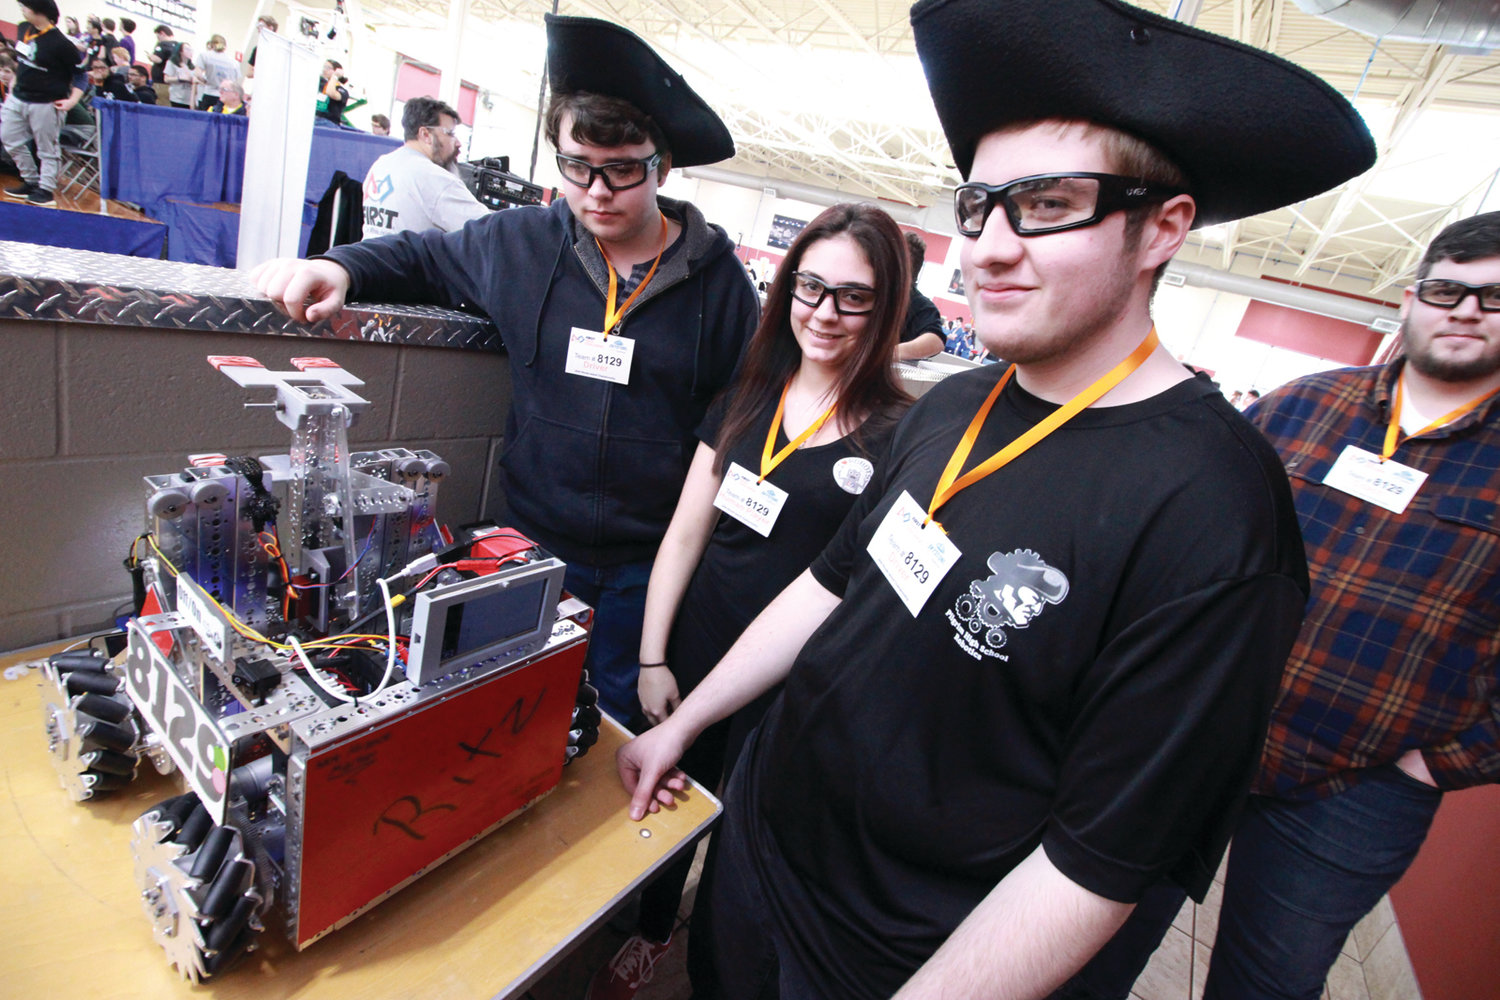 ONE OF FEW: Not many girls were members of the 28 teams competing Saturday. Pilgrim's Jordan Pennacchia was an exception. Throughout construction of the robot, a process that started in the fall, she kept a record of the progress in a notebook that is evaluated as part of the team score. She's pictured with Connor Fisette and Aidan Sanita.